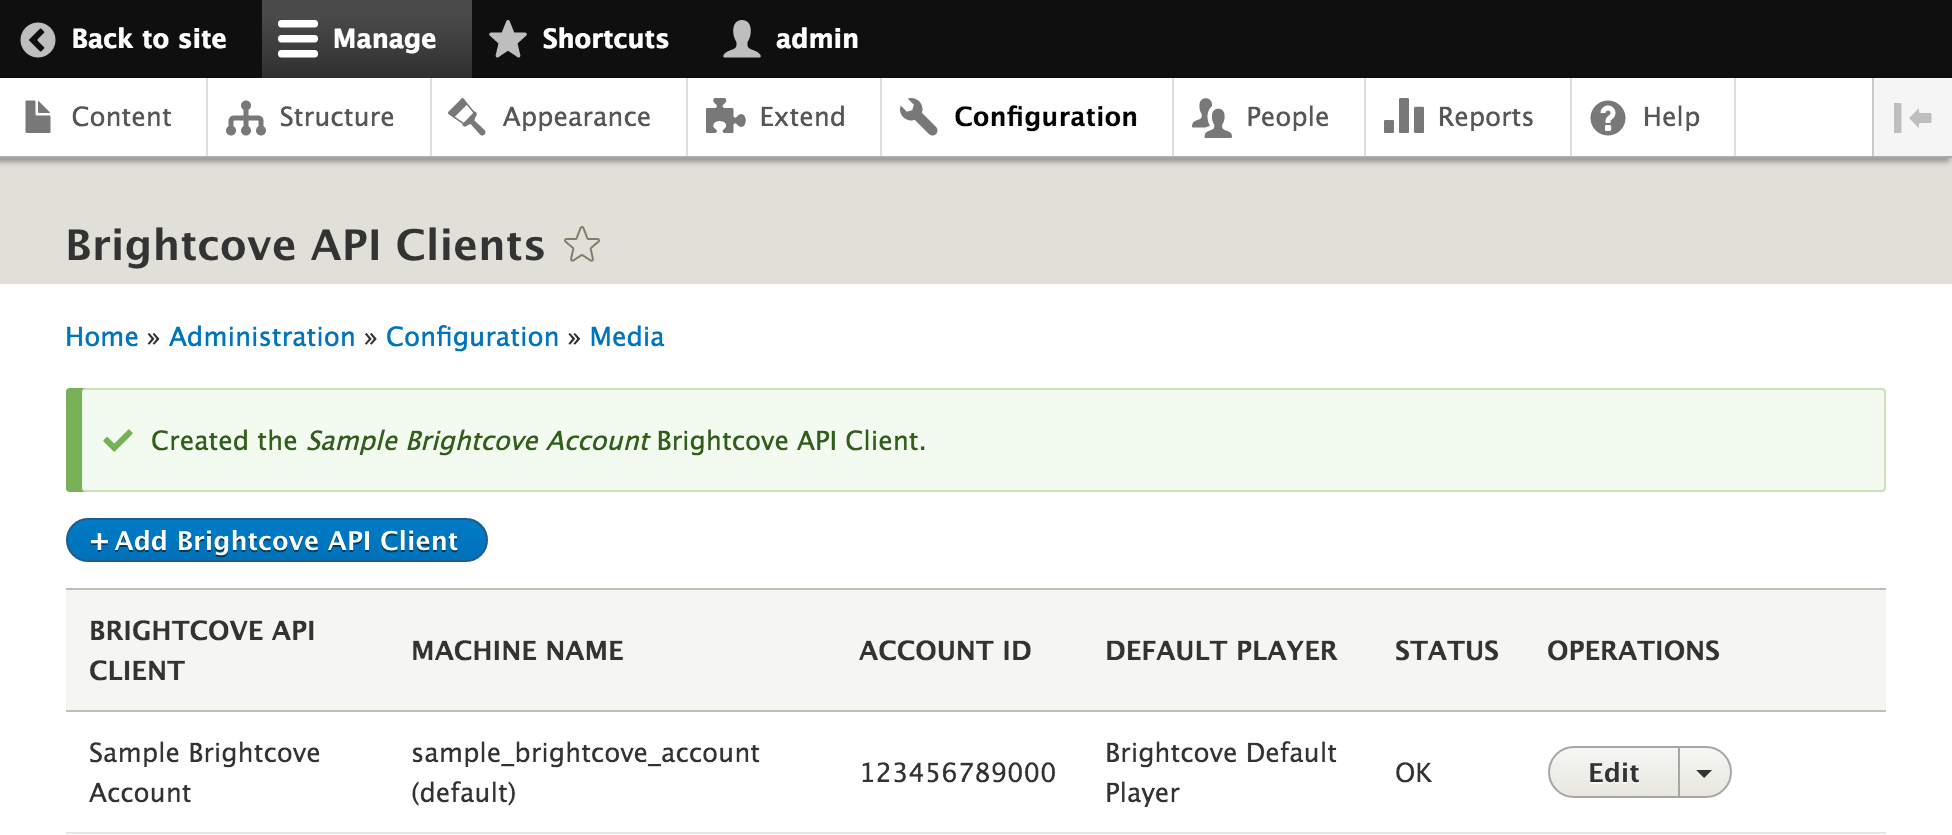 Brightcove API Clients successfully added new client